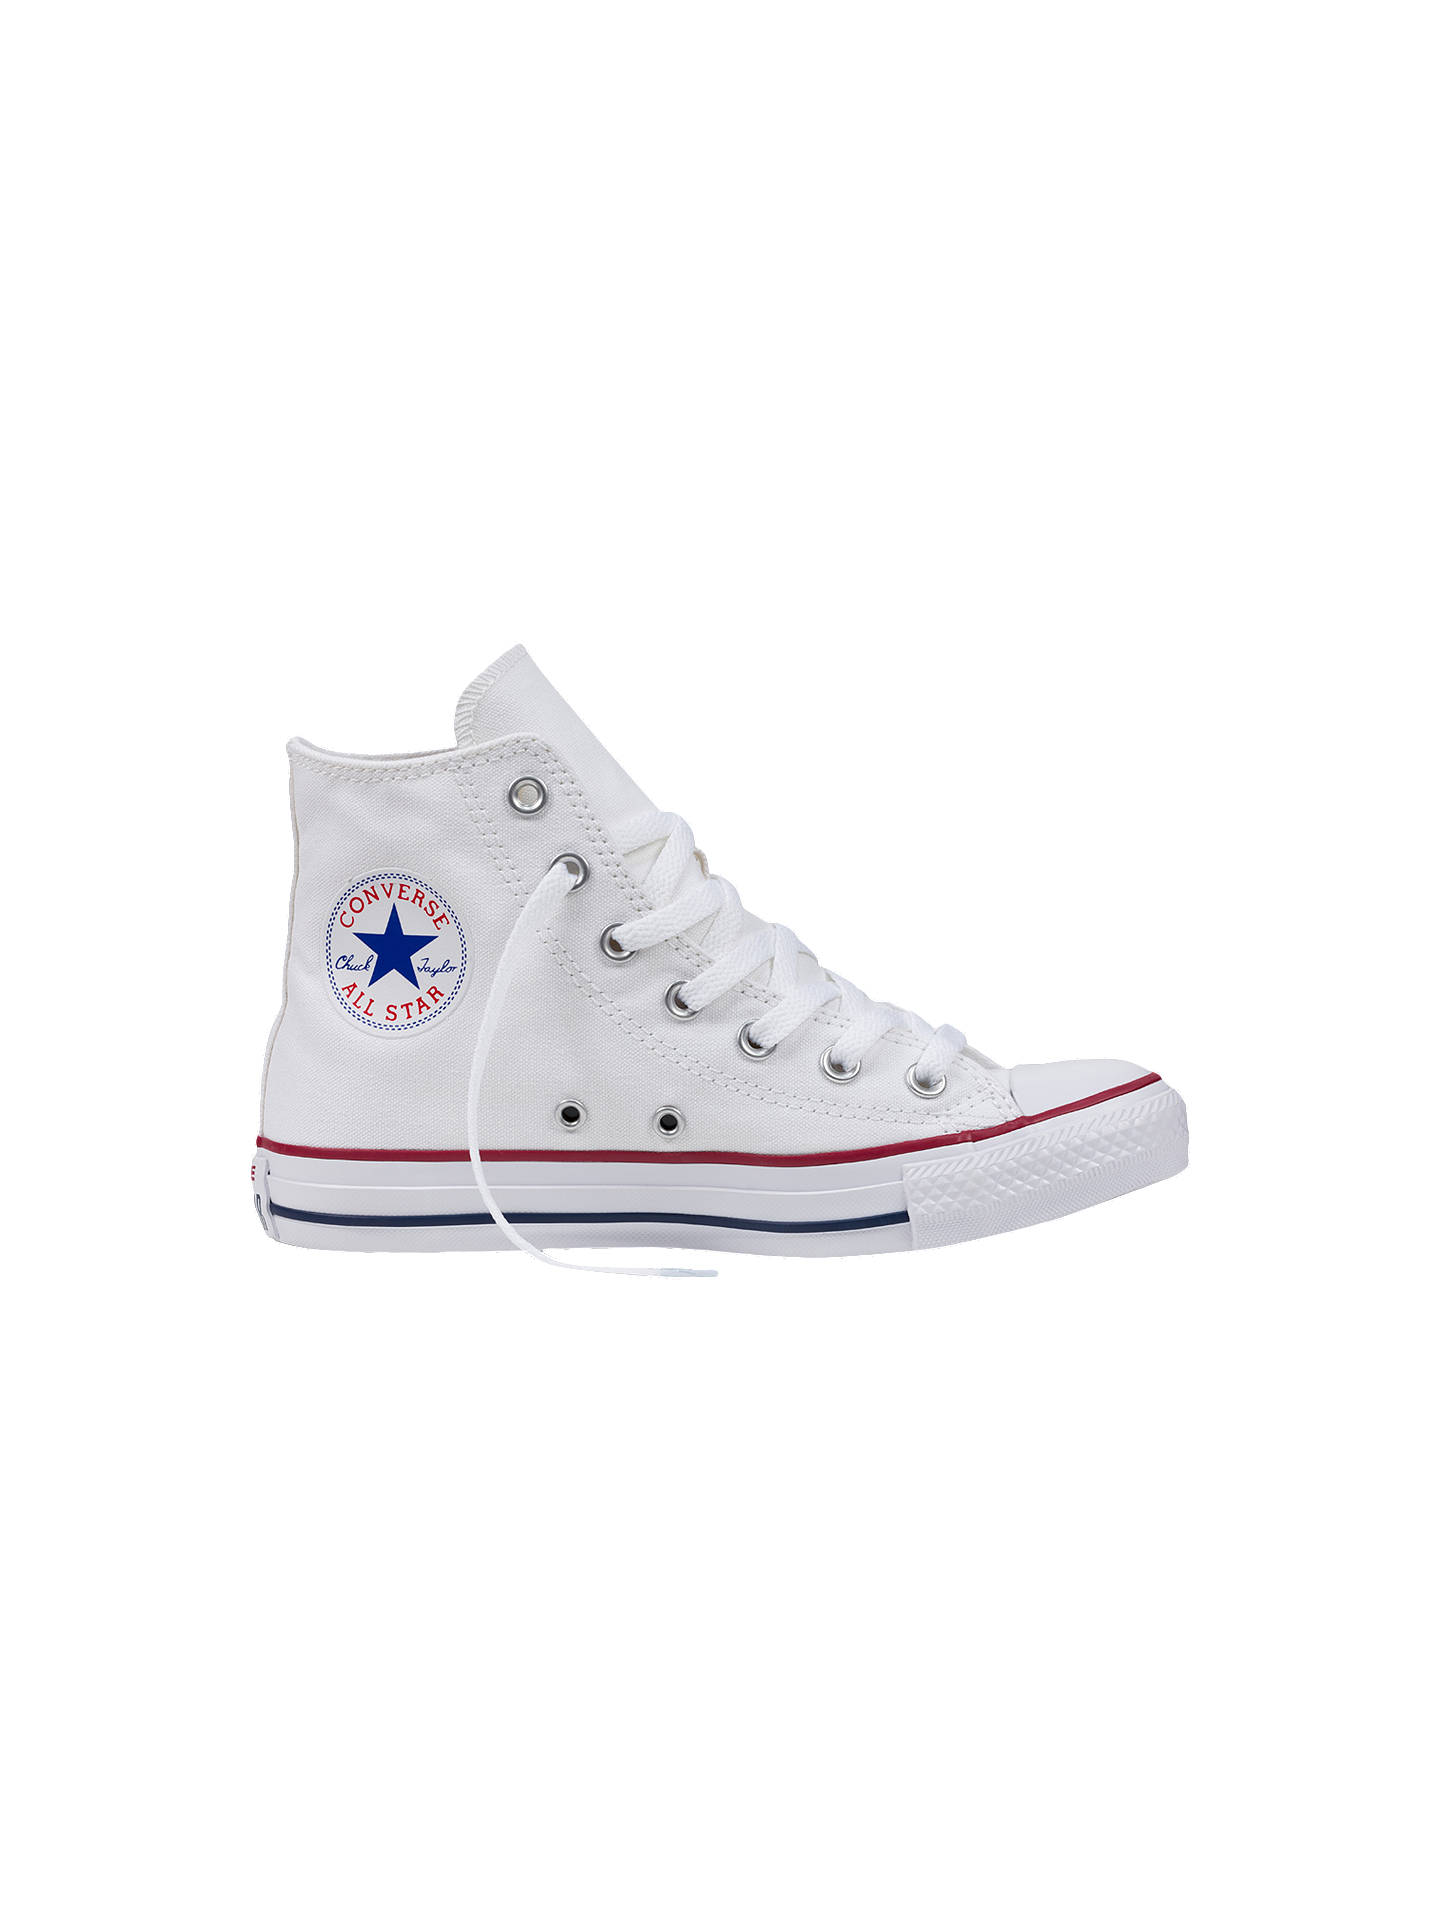 90bddb65e288 Converse All Star Hi-Top Trainers at John Lewis   Partners